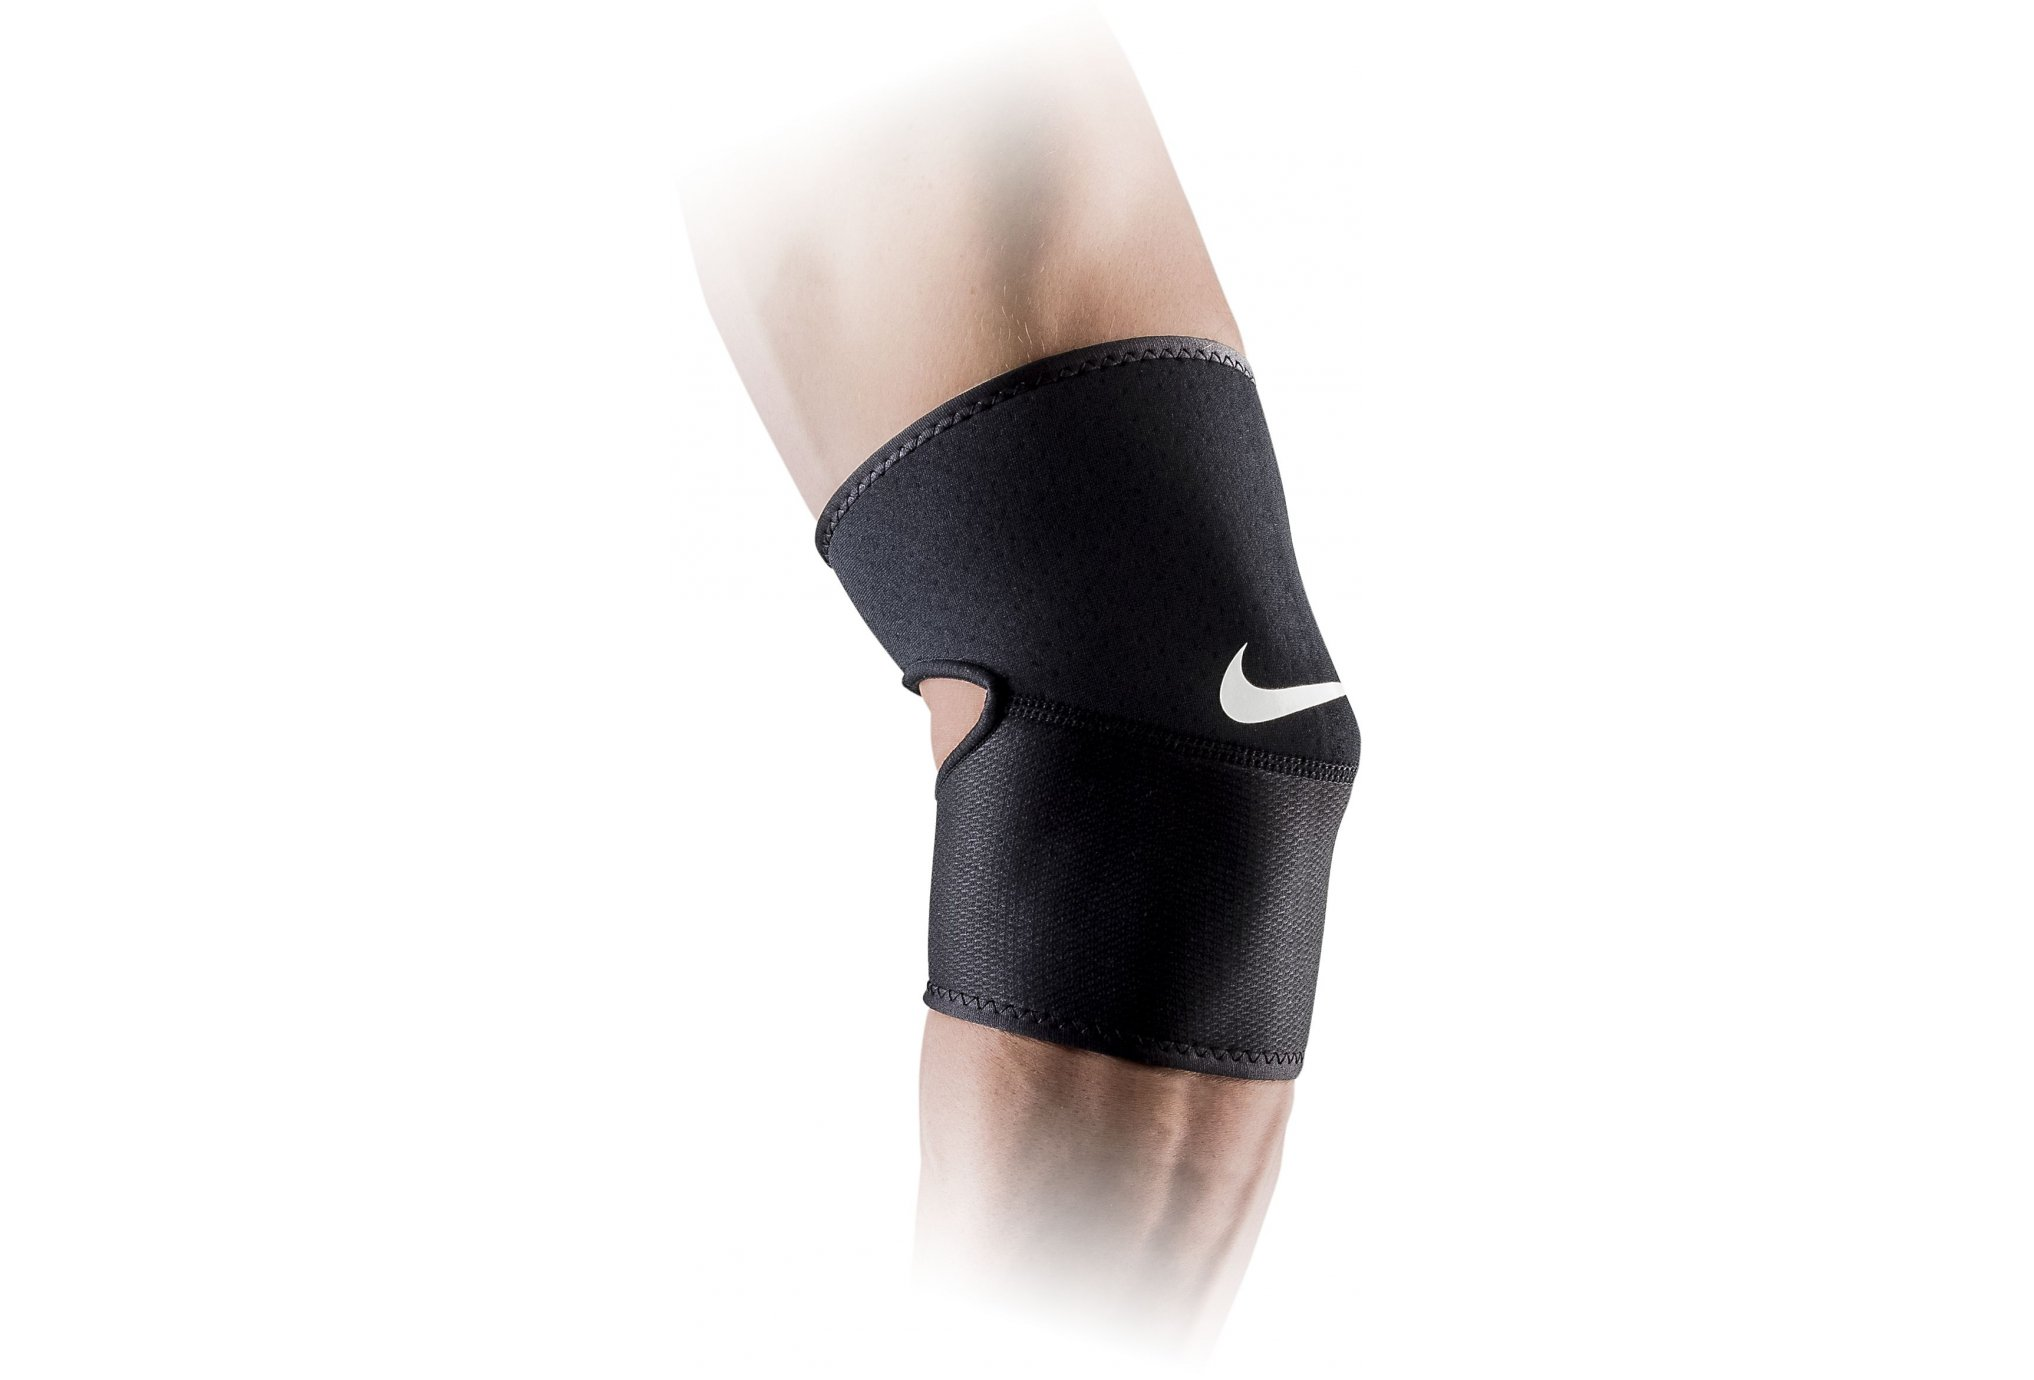 Nike Coudière Pro 2.0 Protection musculaire & articulaire